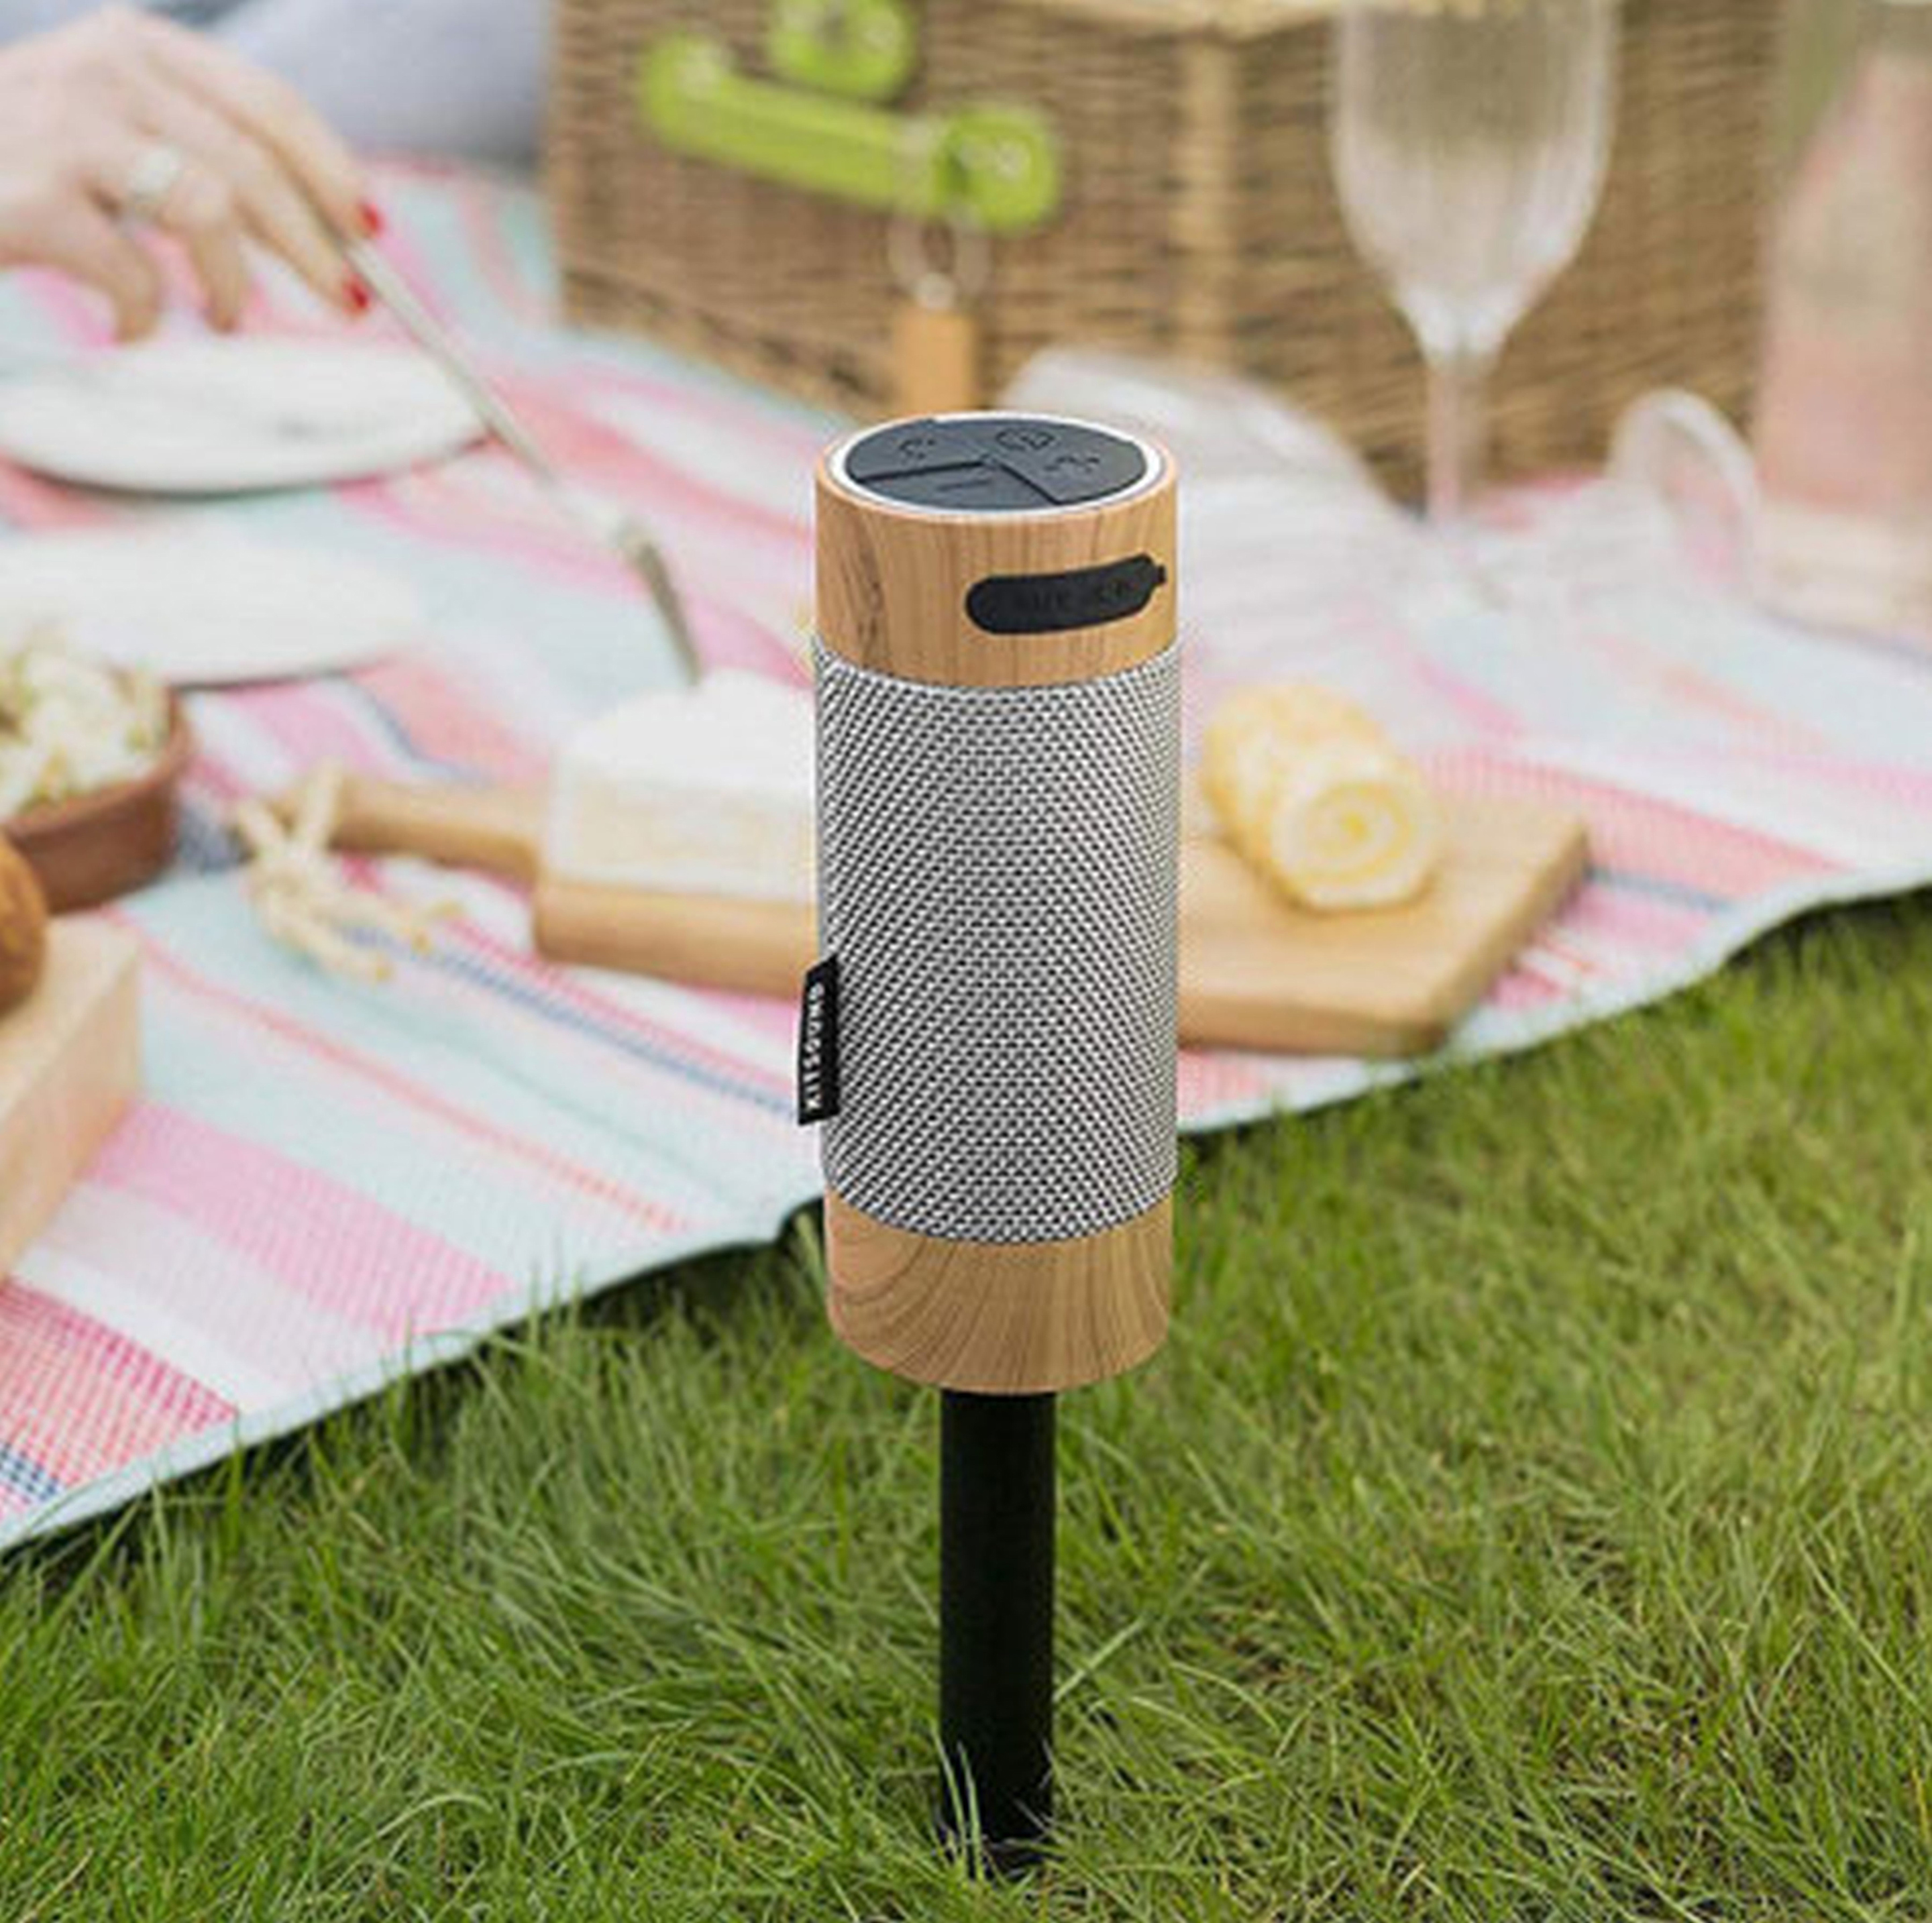 Enjoy music in your garden or on picnics (Amazon/PA)